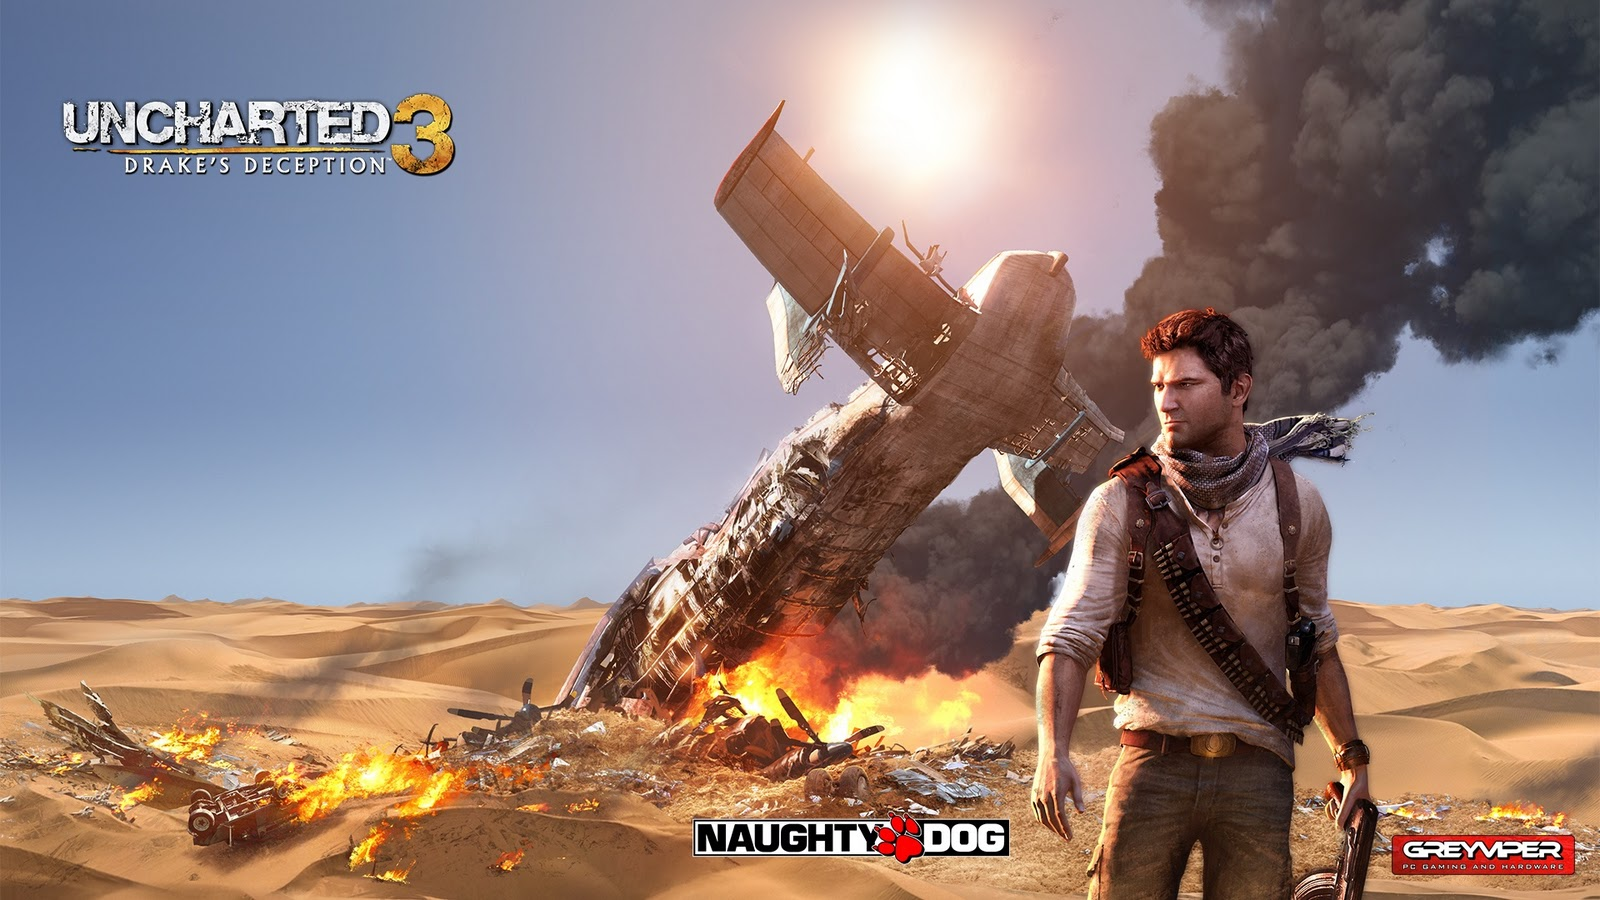 http://4.bp.blogspot.com/_xg8zICKk1VE/TUDql-Ye0HI/AAAAAAAAAB0/USTxfWOkOt0/s1600/uncharted-3-drakes-deception-wallpaper.jpg